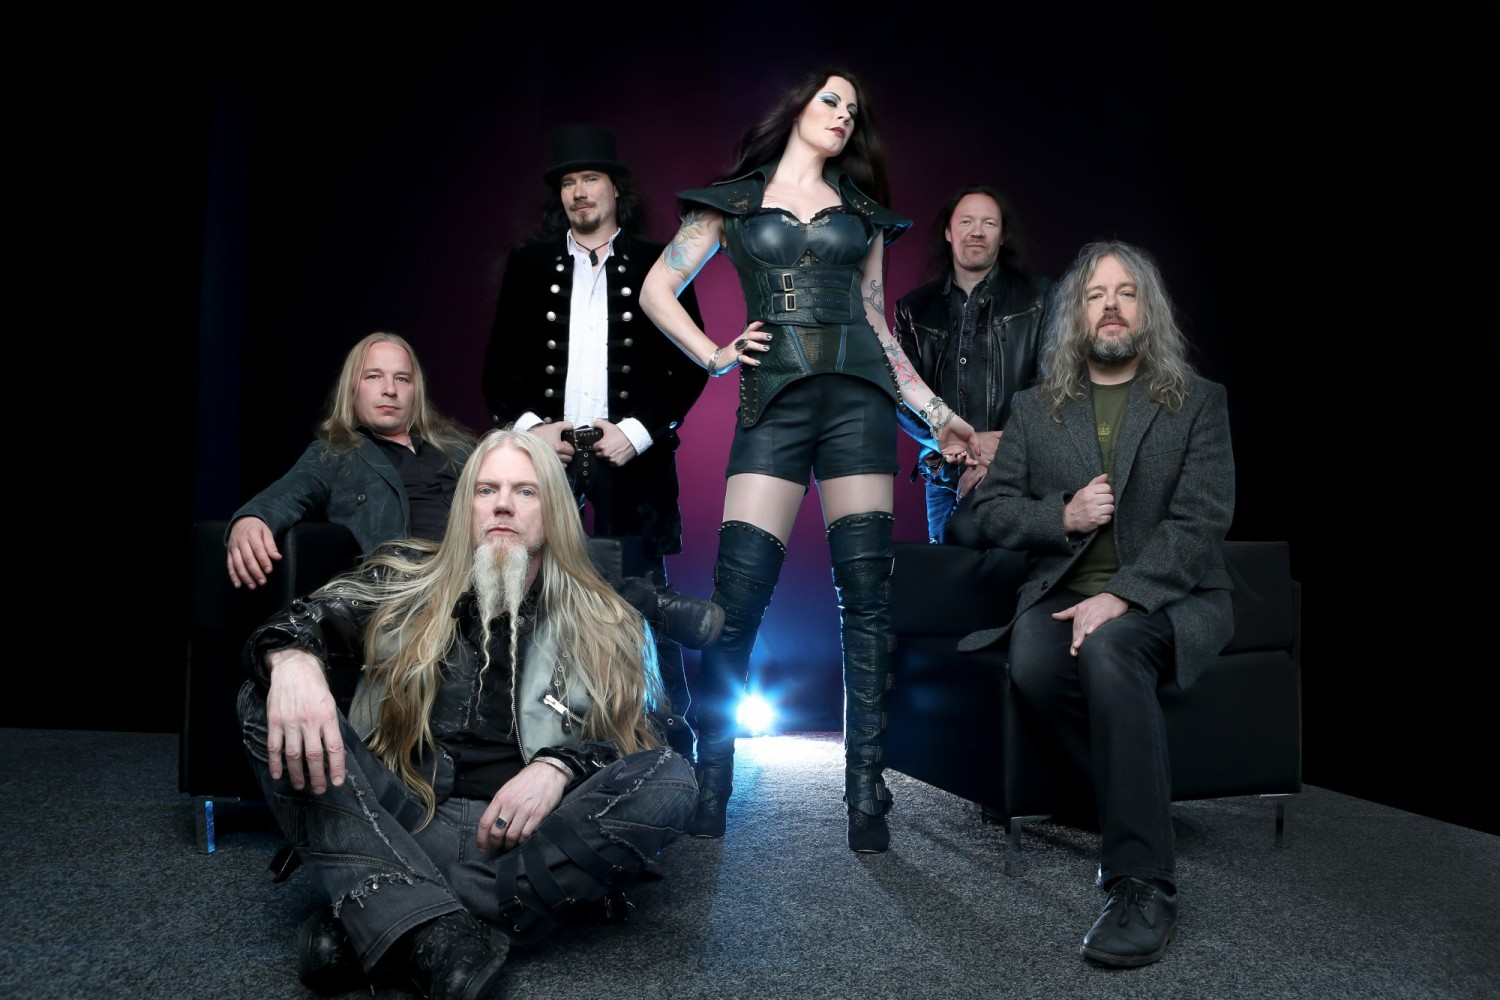 nightwish_2018_by_tim_tronckoesmall_1.jpg